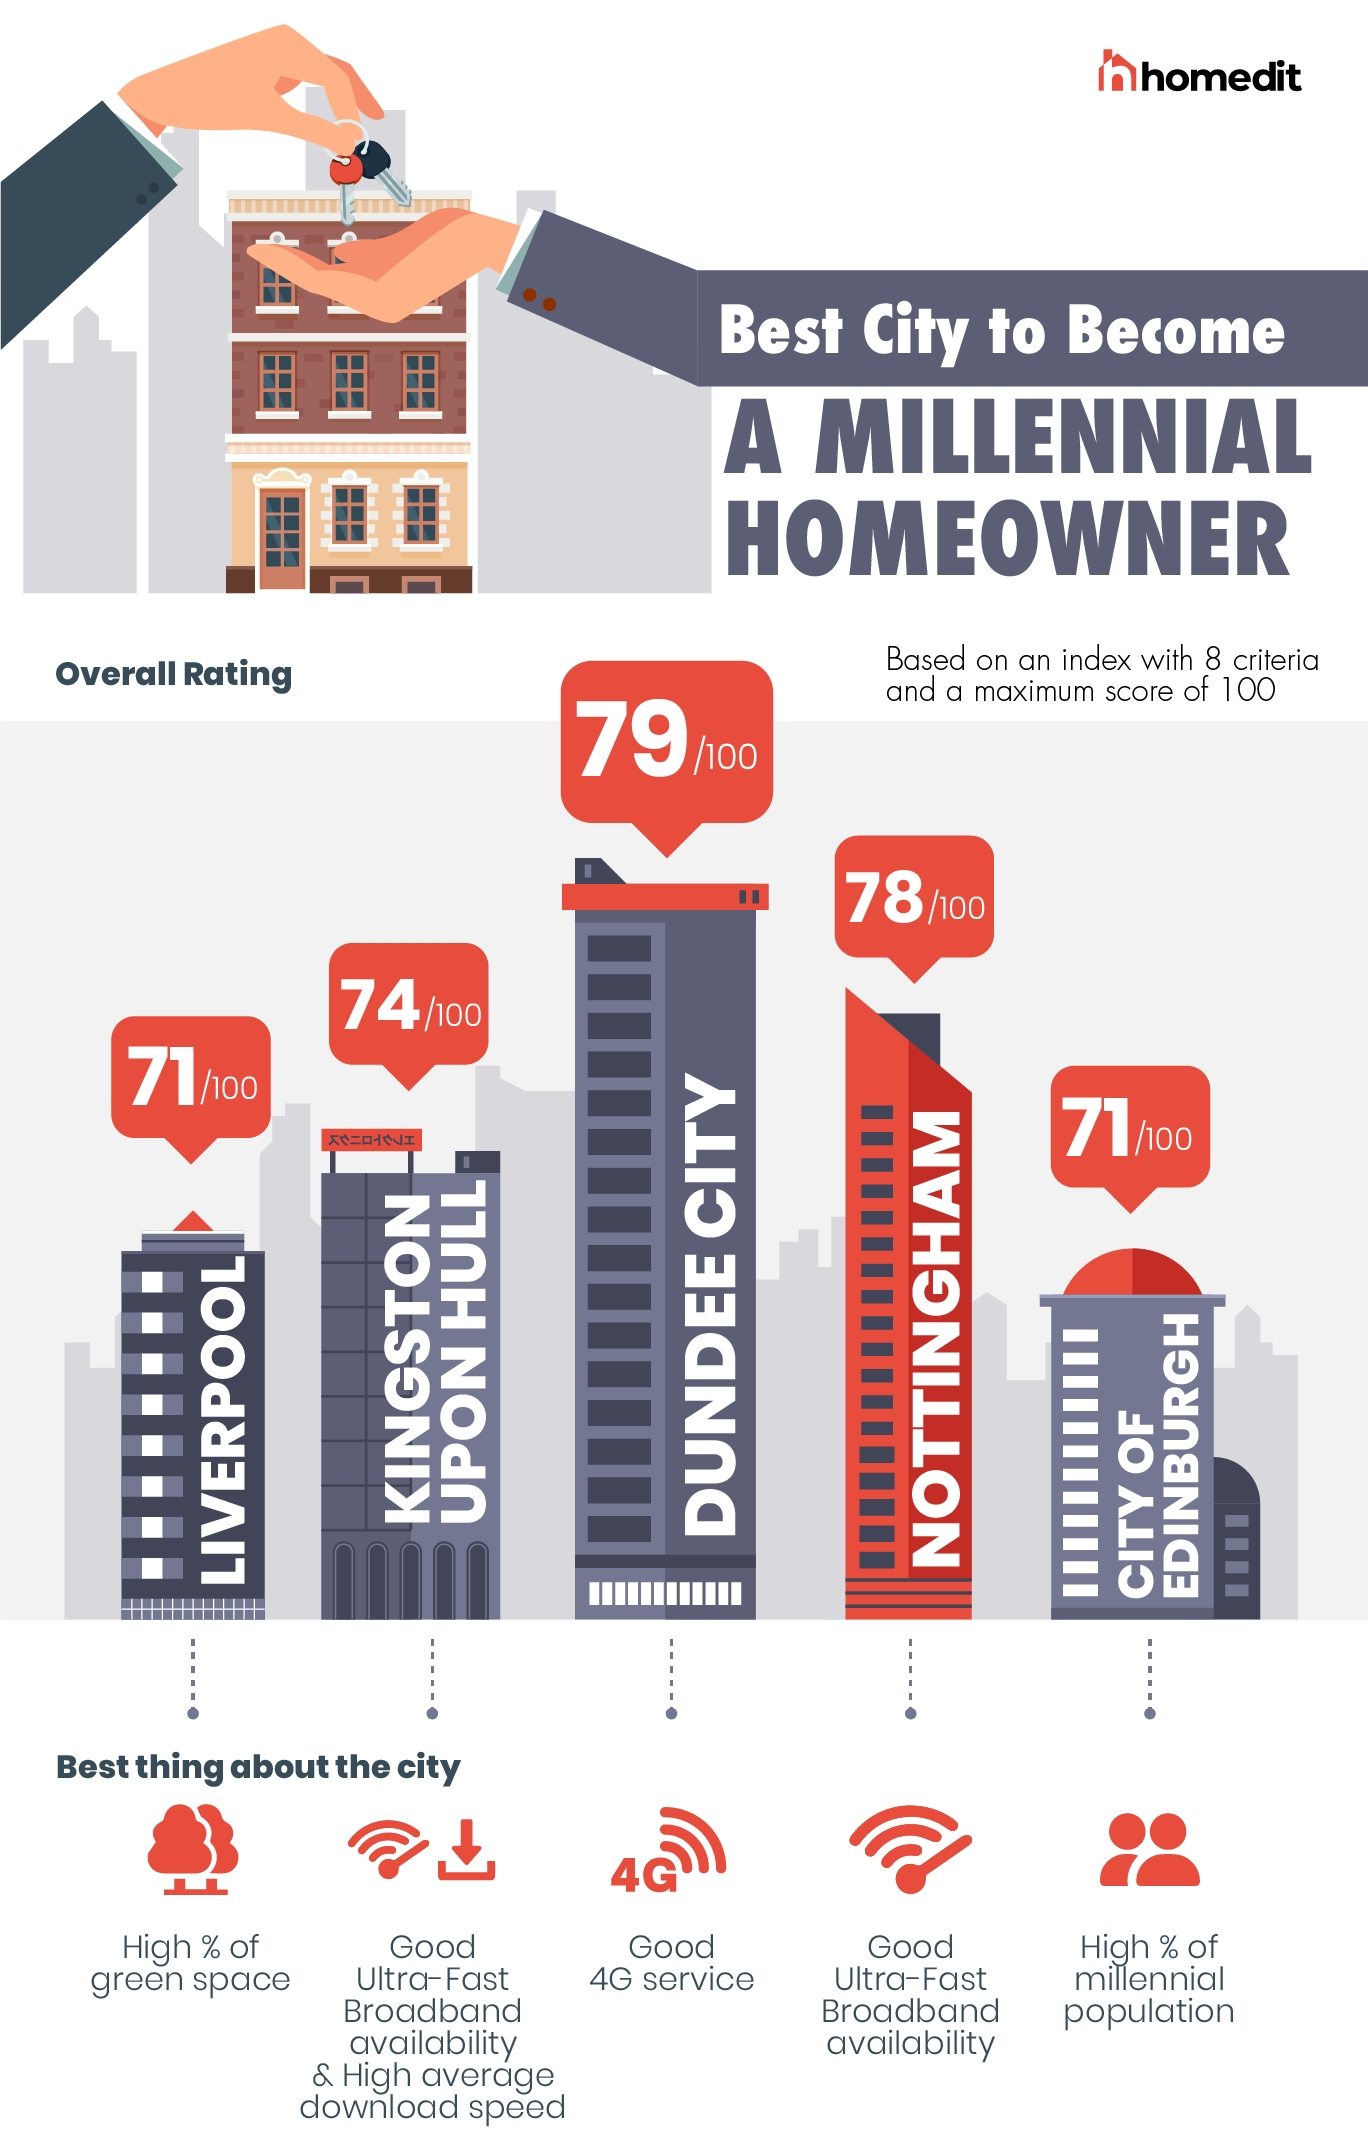 The best cities to become a millennial homeowner